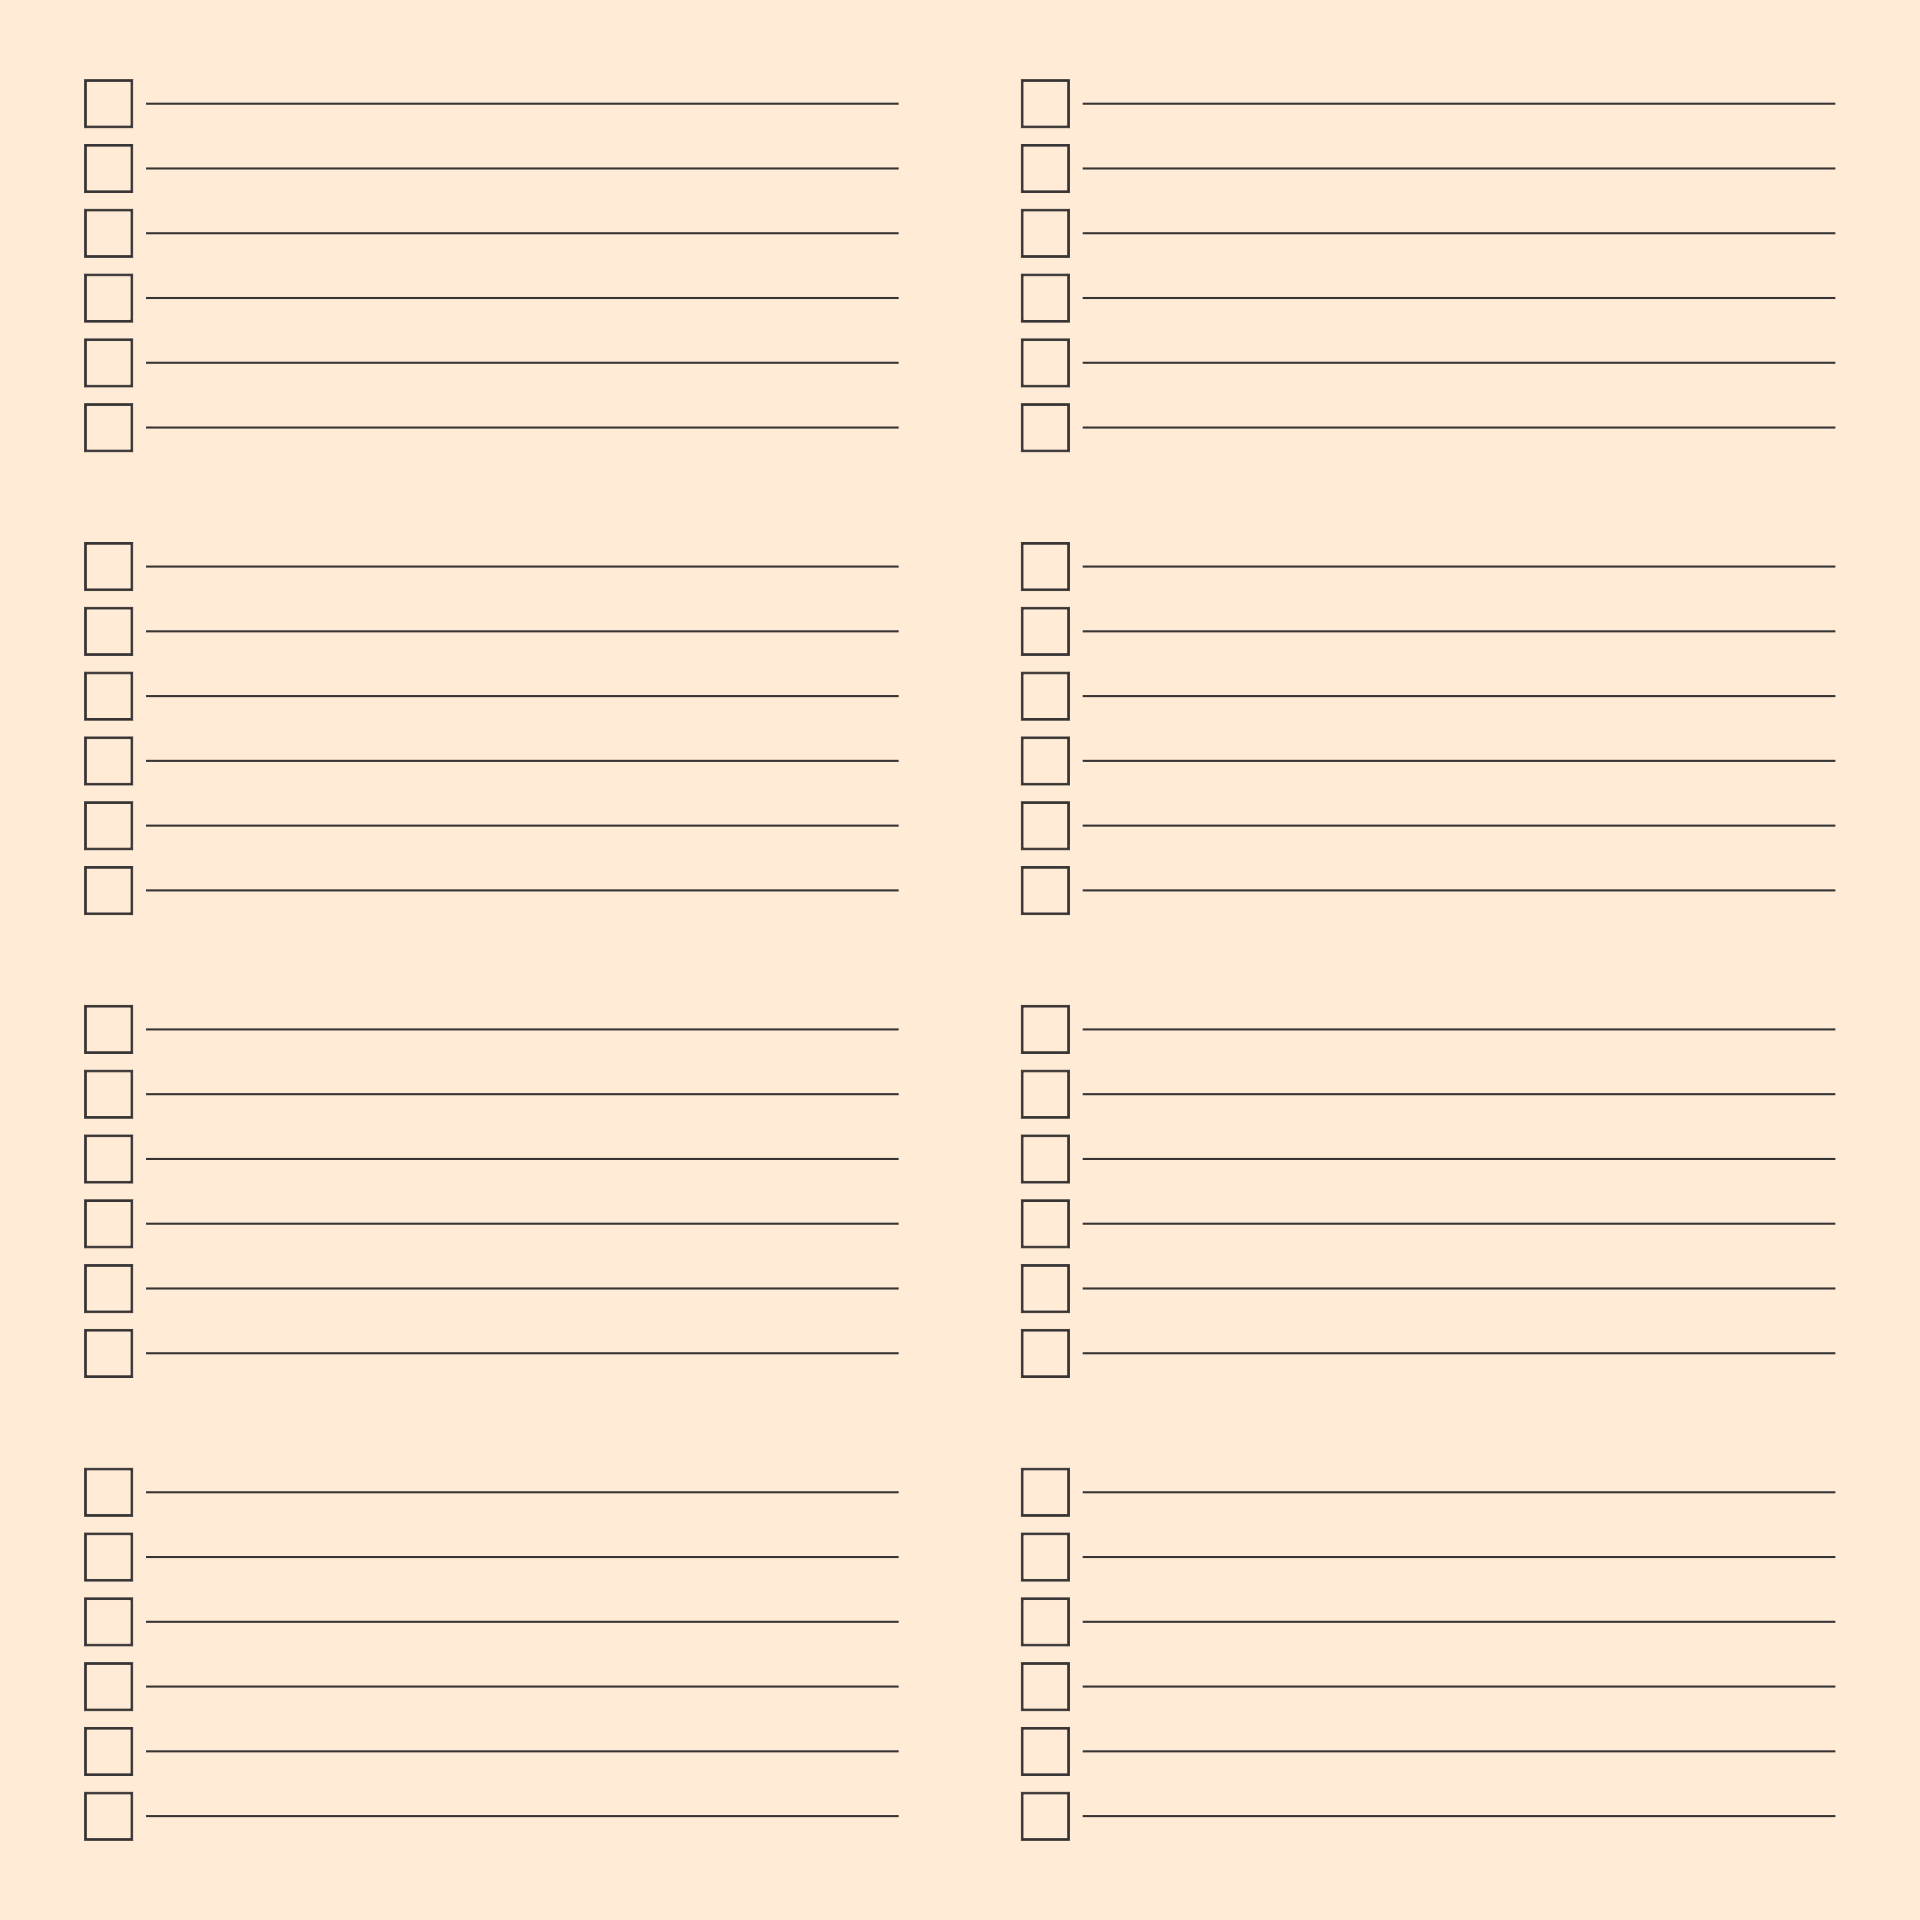 free checklist template - 7 best images of editable blank printable checklists